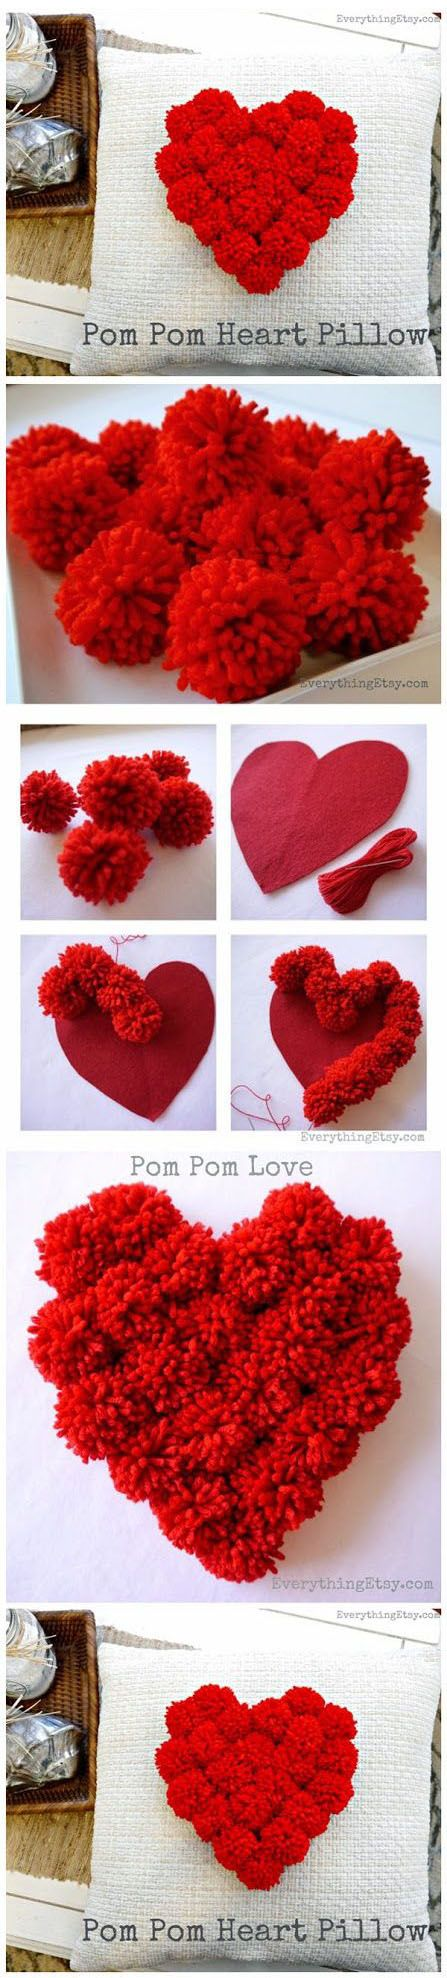 DIY Pom Pom Heart Pillow Pictures, Photos, and Images for Facebook, Tumblr, Pinterest, and Twitter: